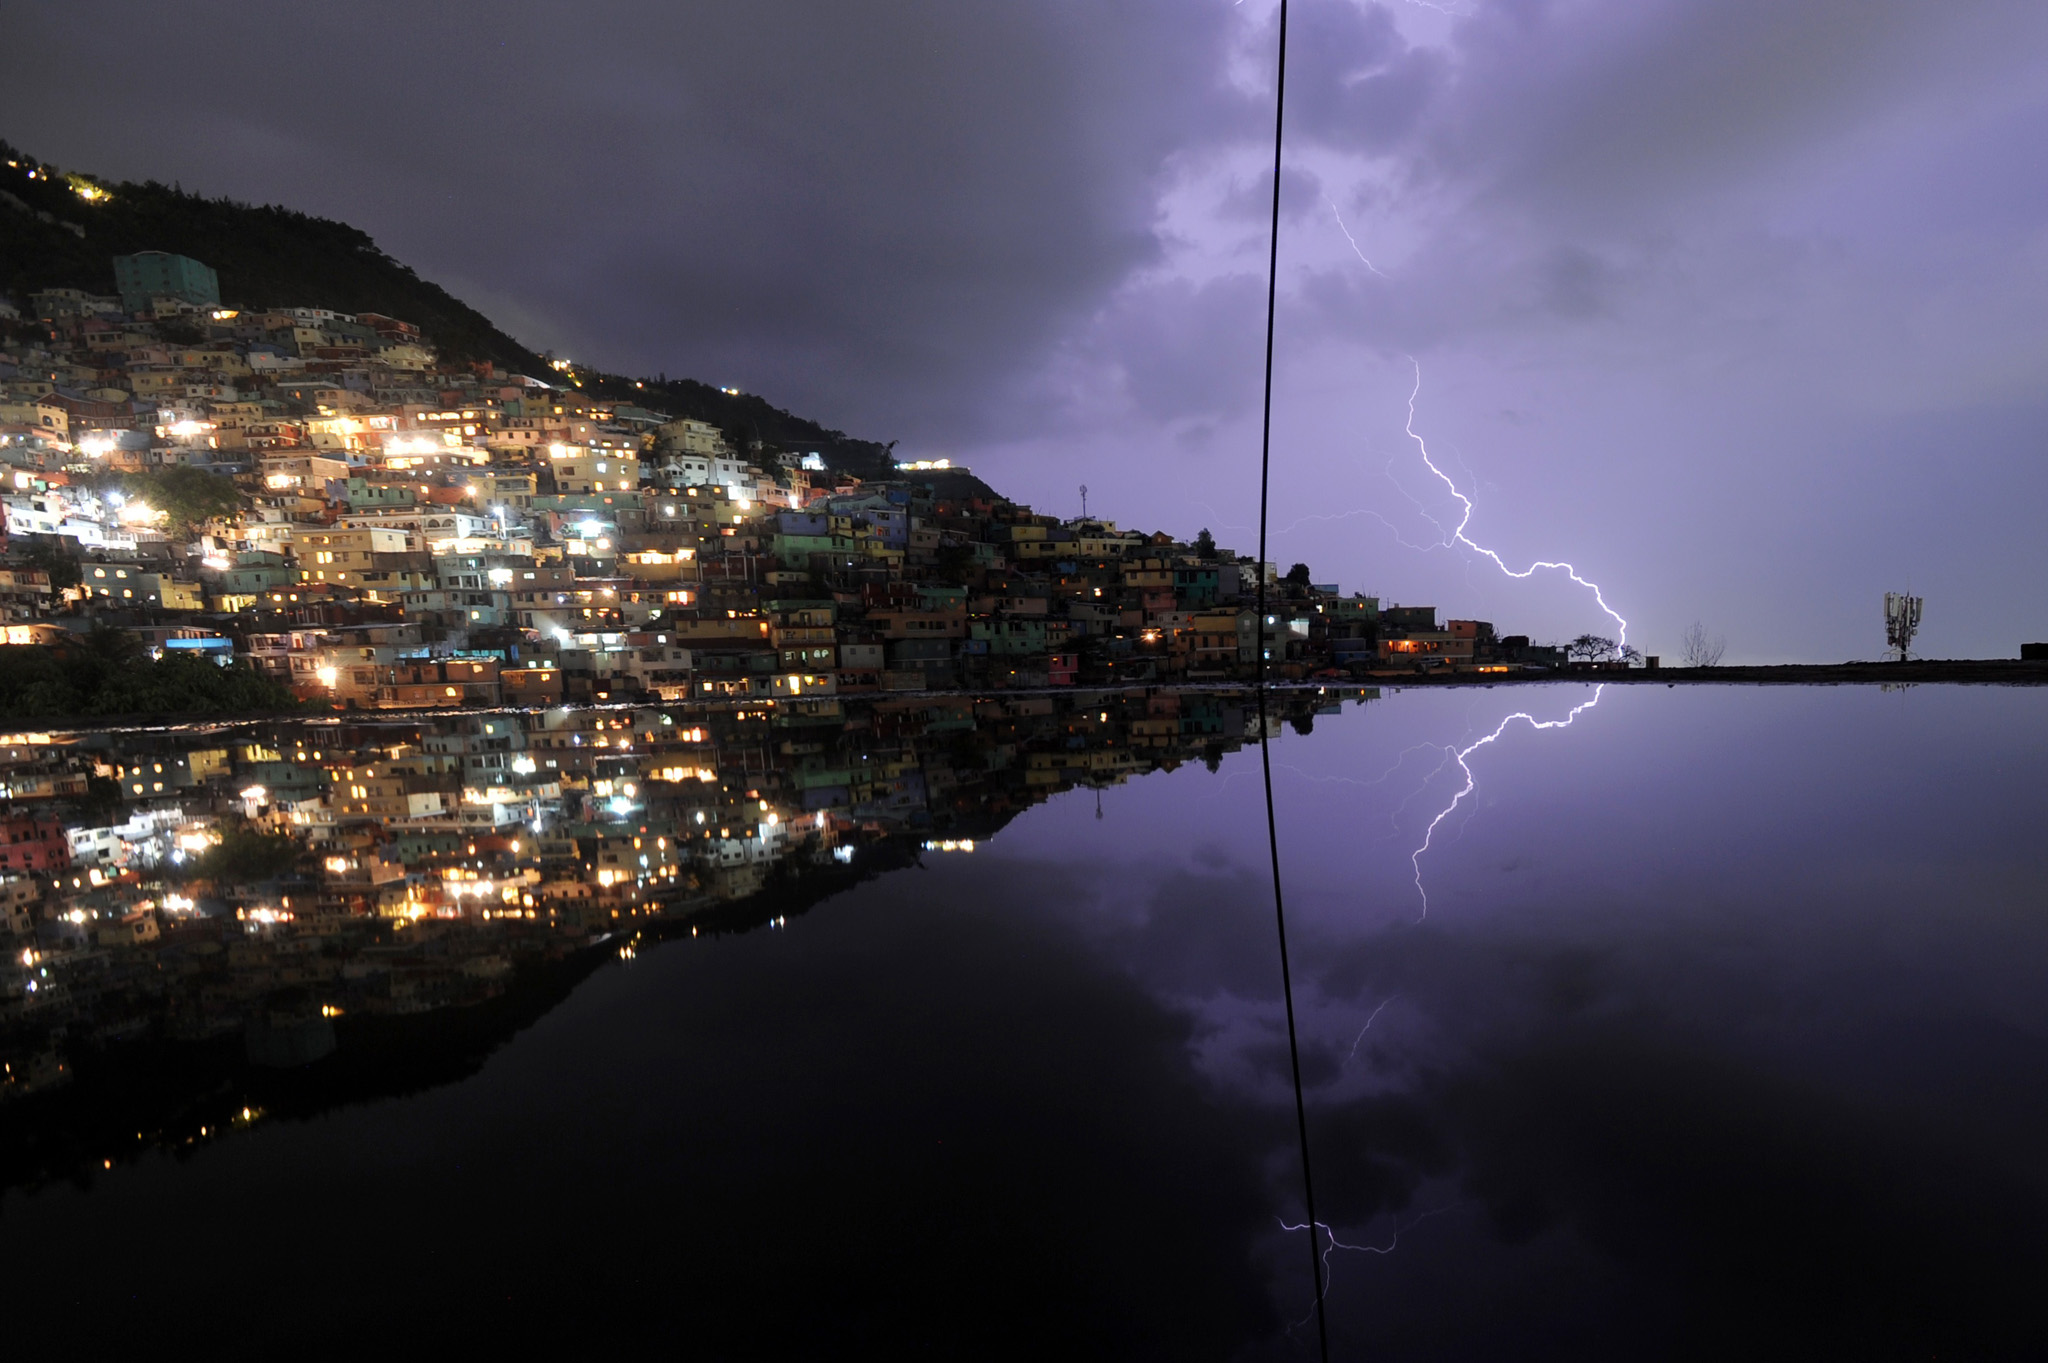 TOPSHOTS A long exposure shows lightning...TOPSHOTS A long exposure shows lightning in the sky with reflection in the water on the floor of a building under construction during an evening thunderstorm on May 19, 2014 in the Haitian capital Port-au-Prince.   AFP PHOTO/Hector RETAMALHECTOR RETAMAL/AFP/Getty Images